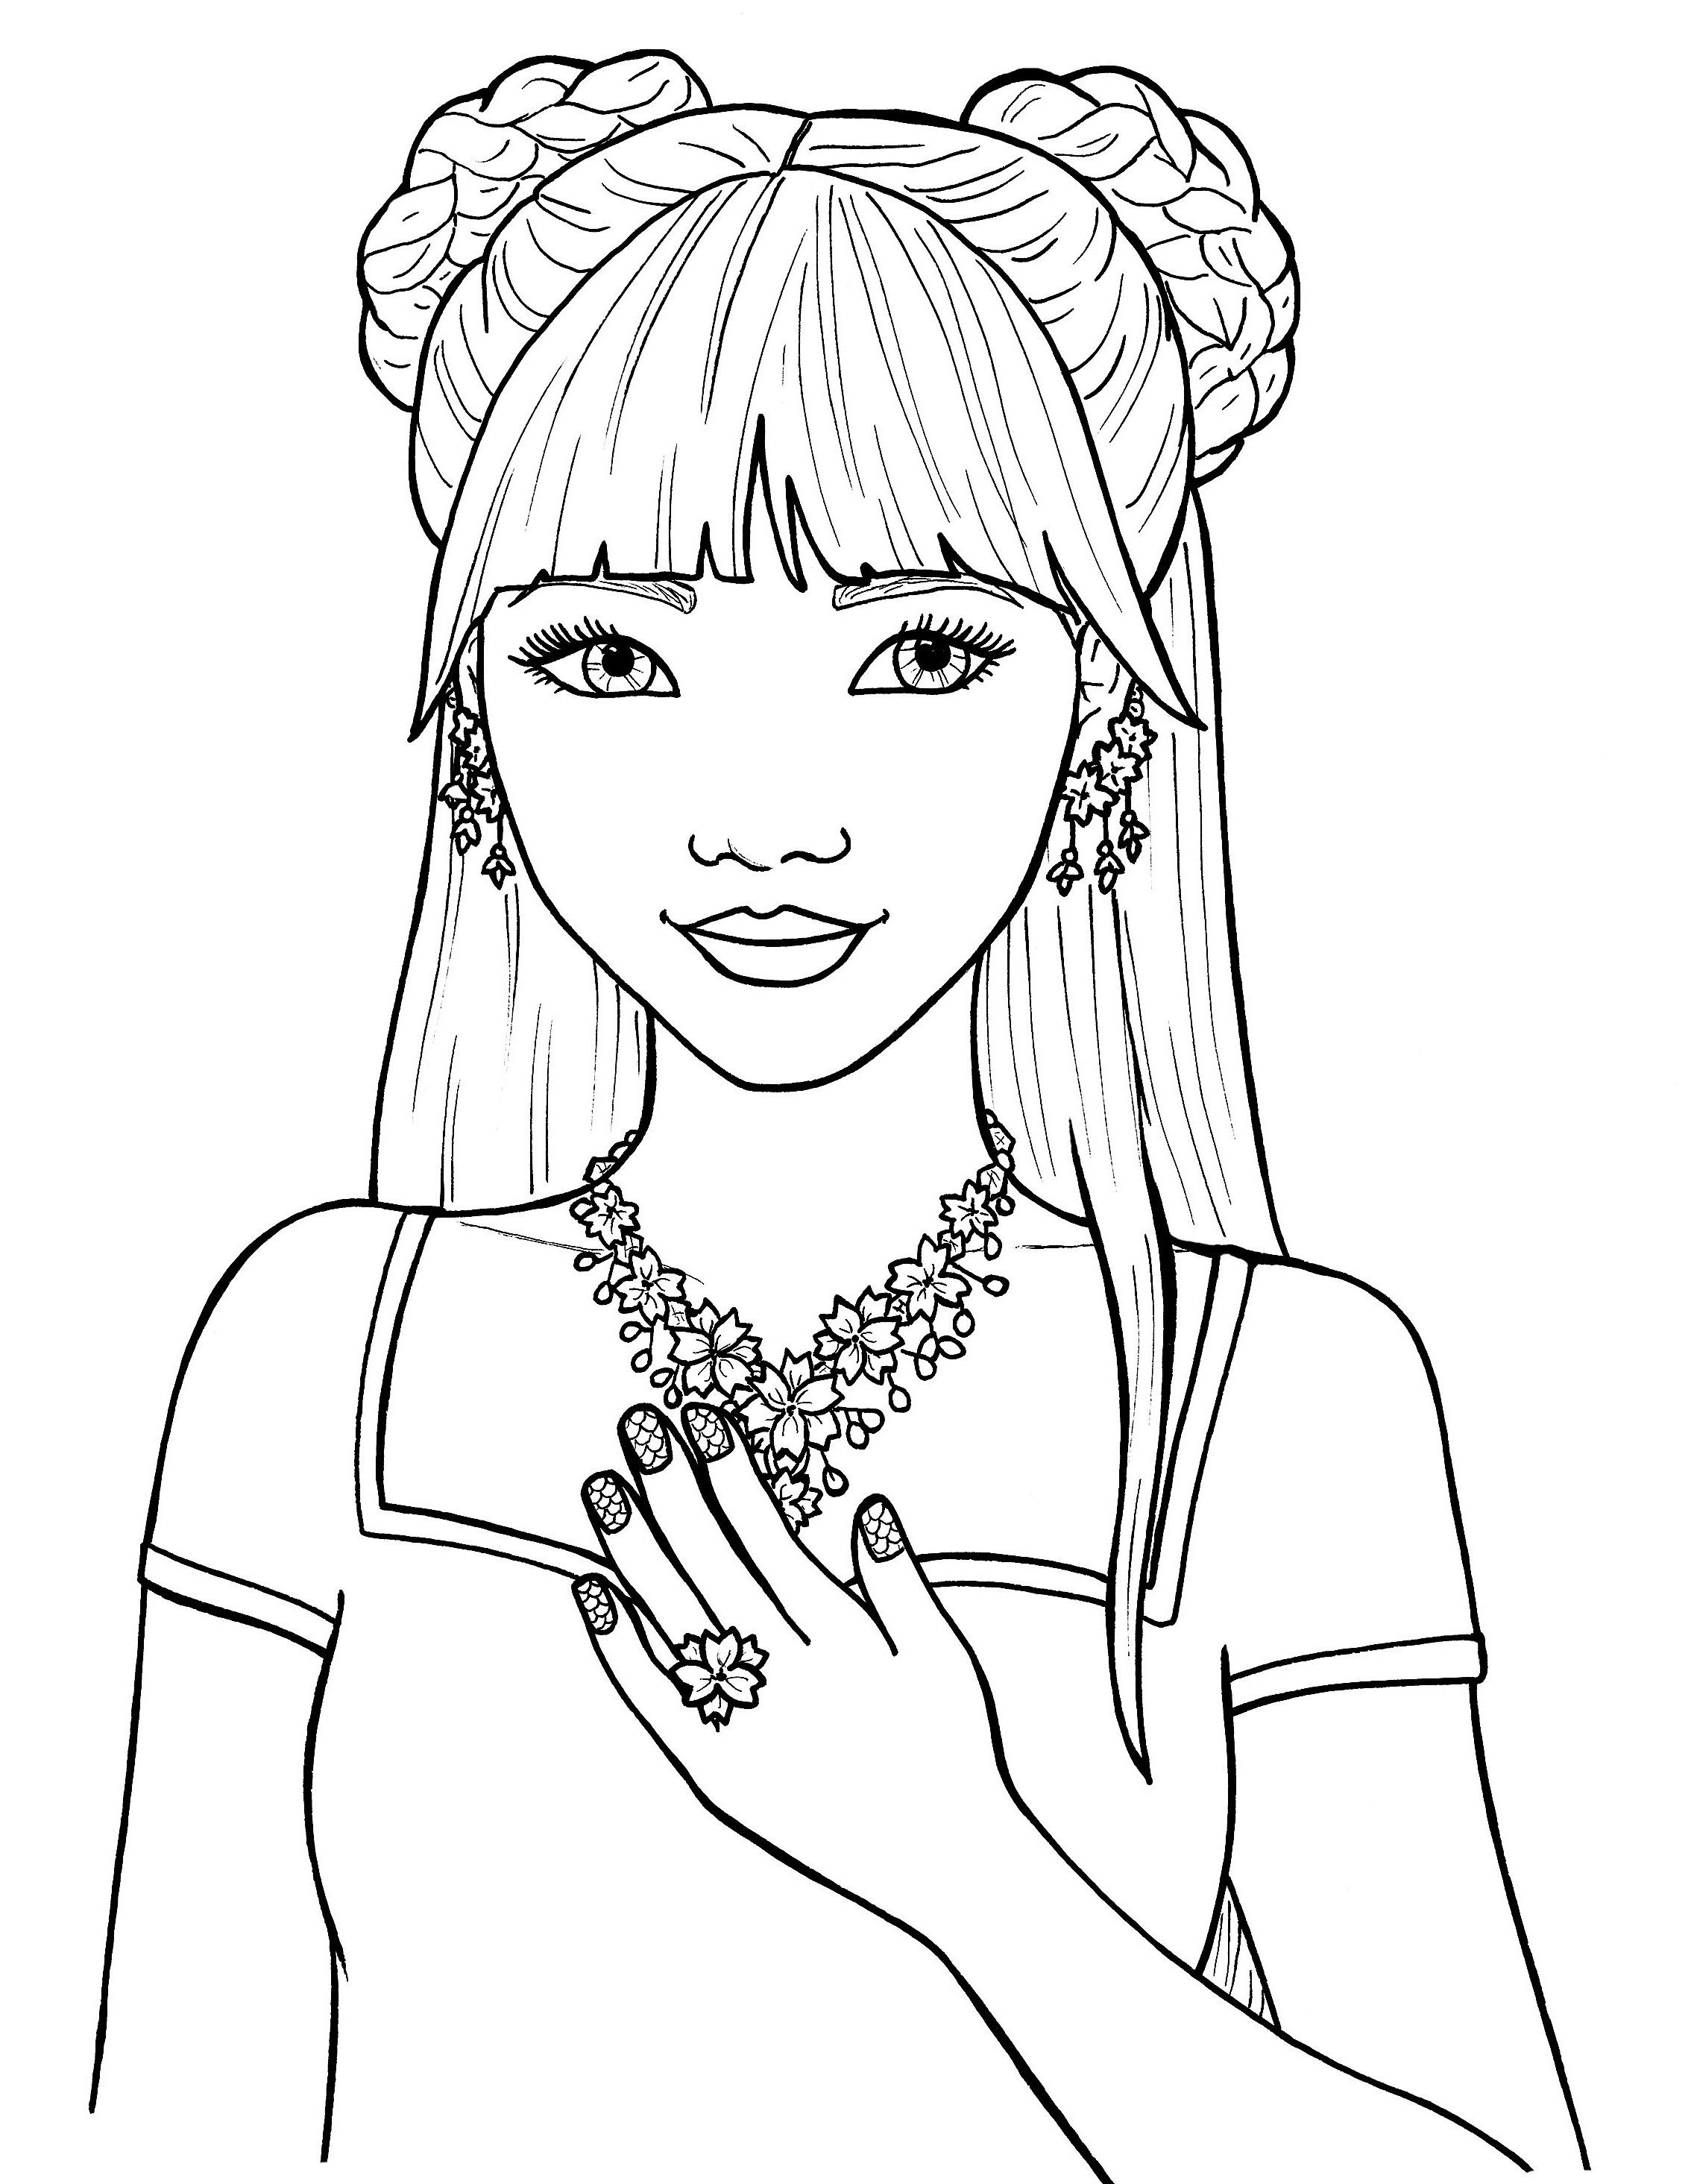 Pin by Hunter Krautbauer on Coloring pages | People ...